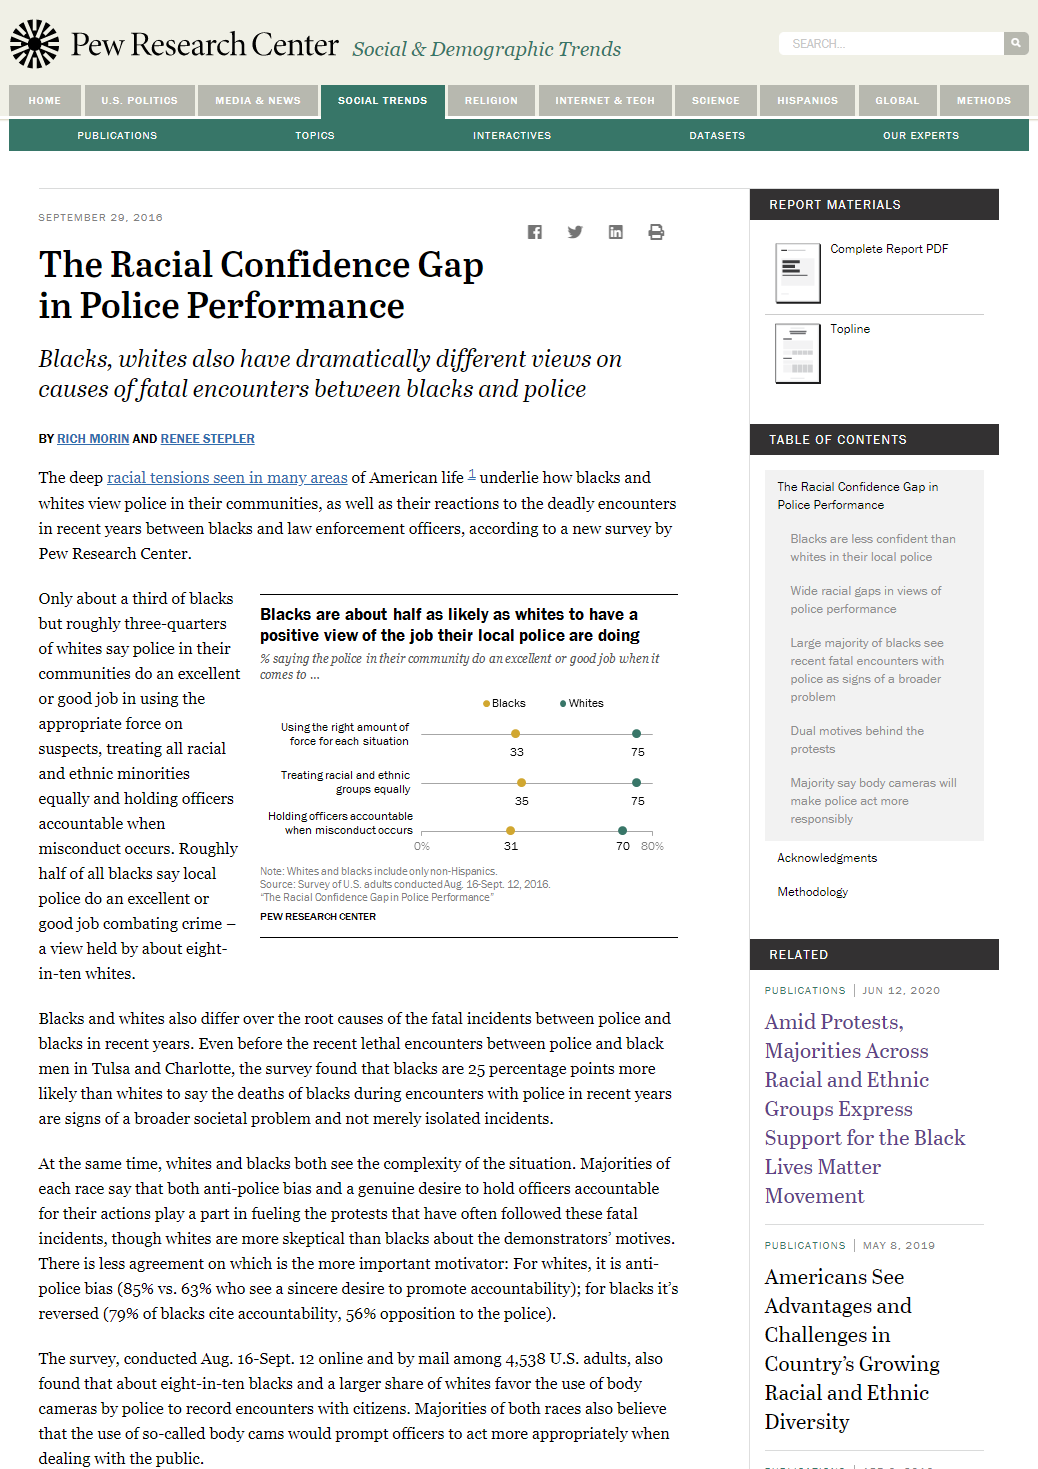 The Racial Confidence Gap in Police Performance: Blacks, Whites Also Have Dramatically Different Views on Causes of Fatal Encounters Between Blacks and Police